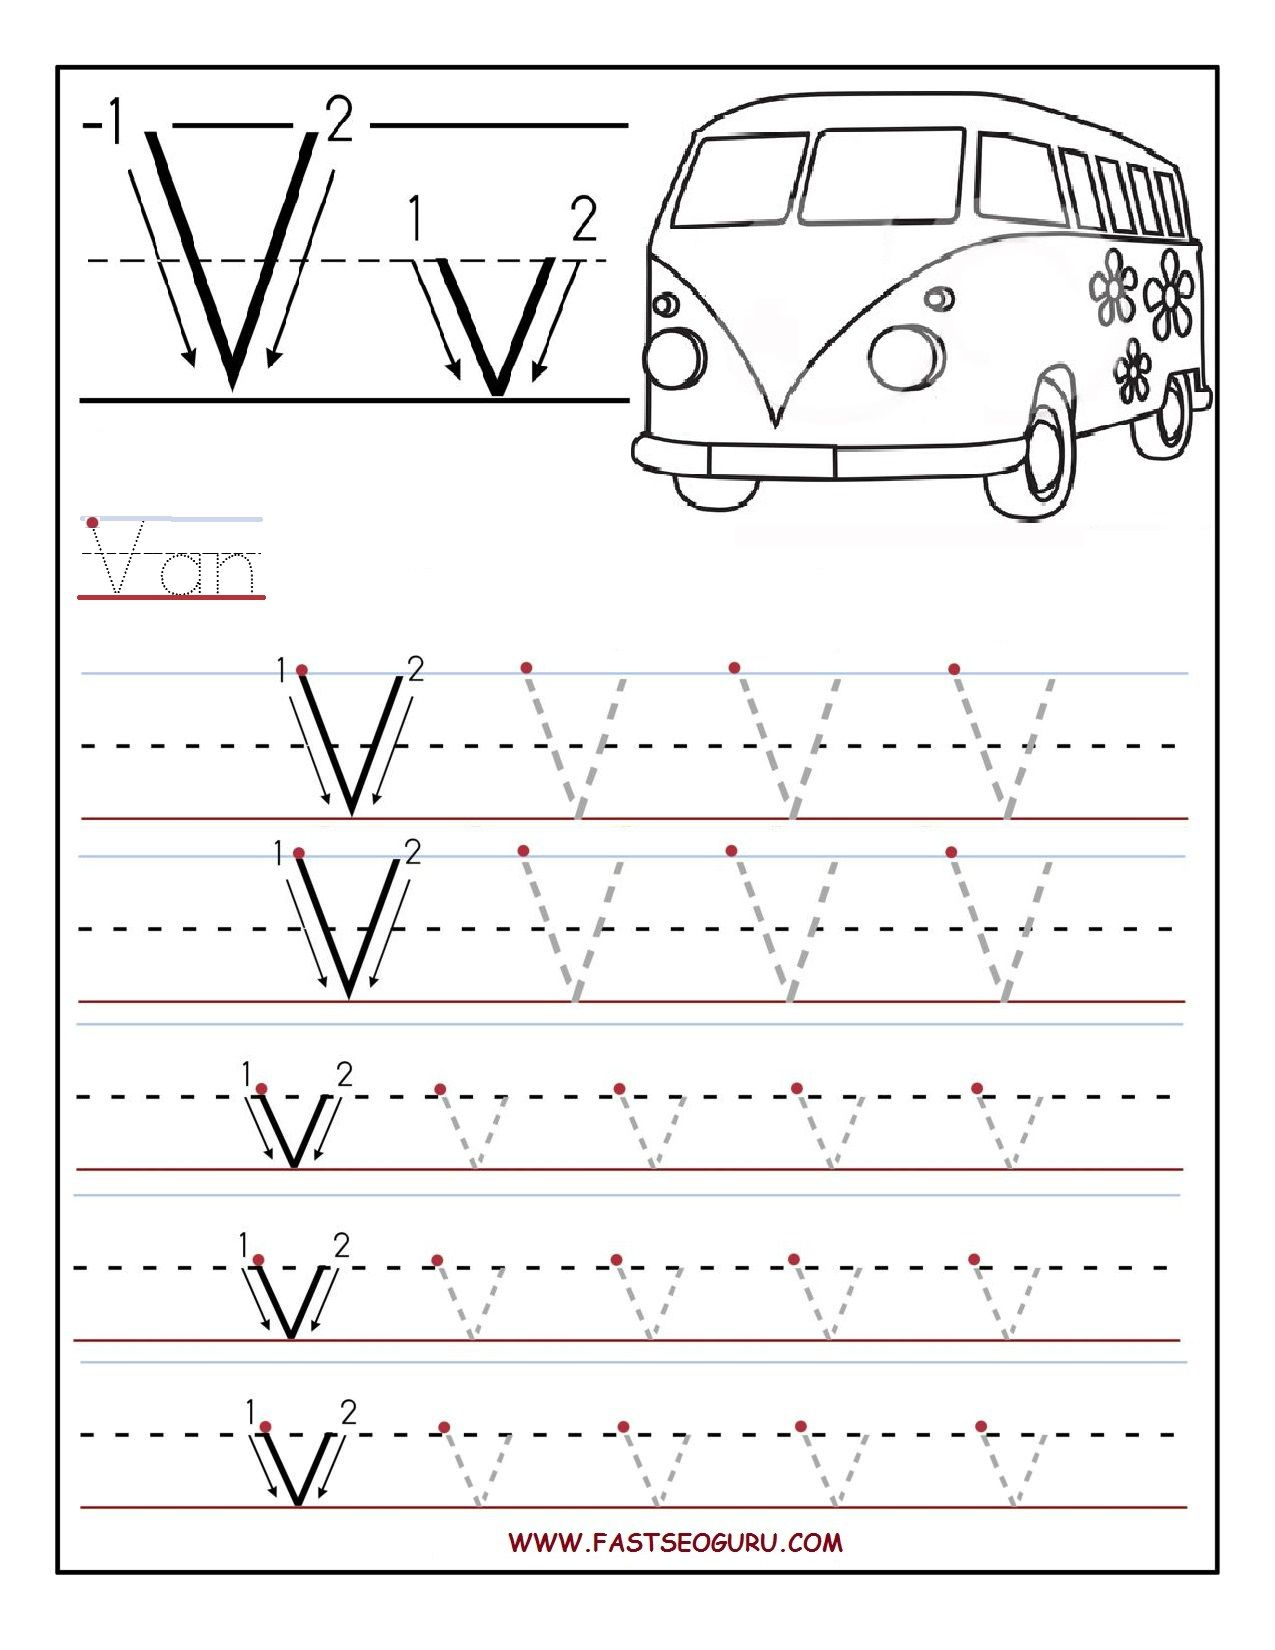 Printable Letter V Tracing Worksheets For Preschool | Letter